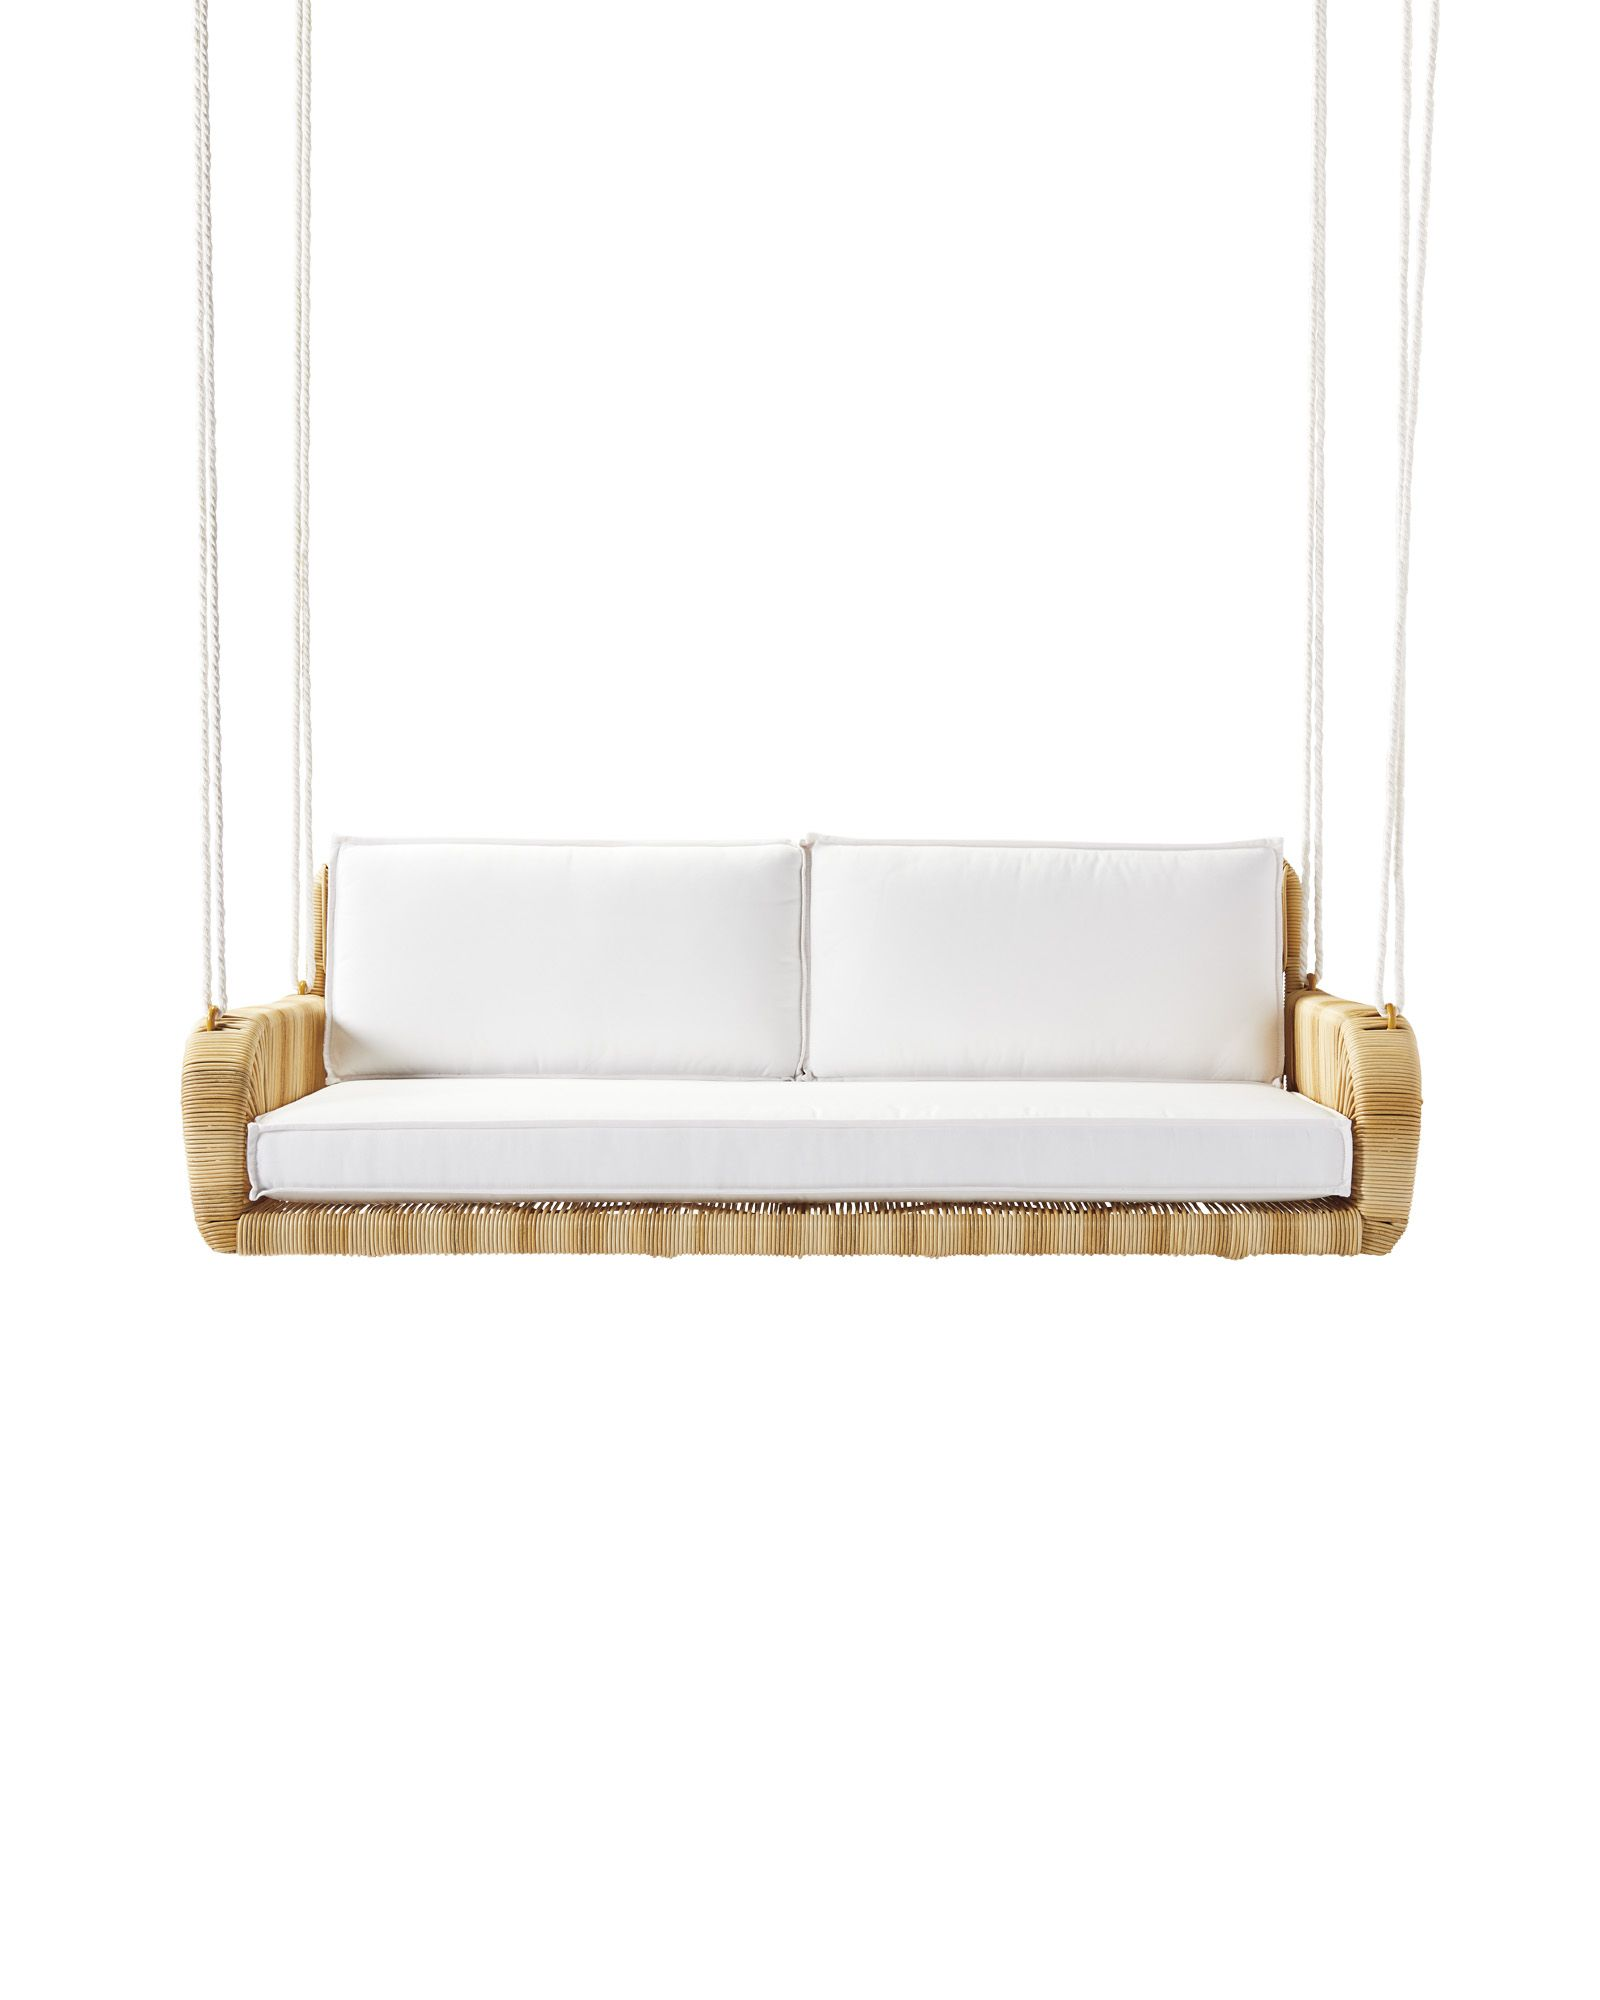 Springwood Hanging Daybed In 2020 Hanging Daybed Daybed Hanging